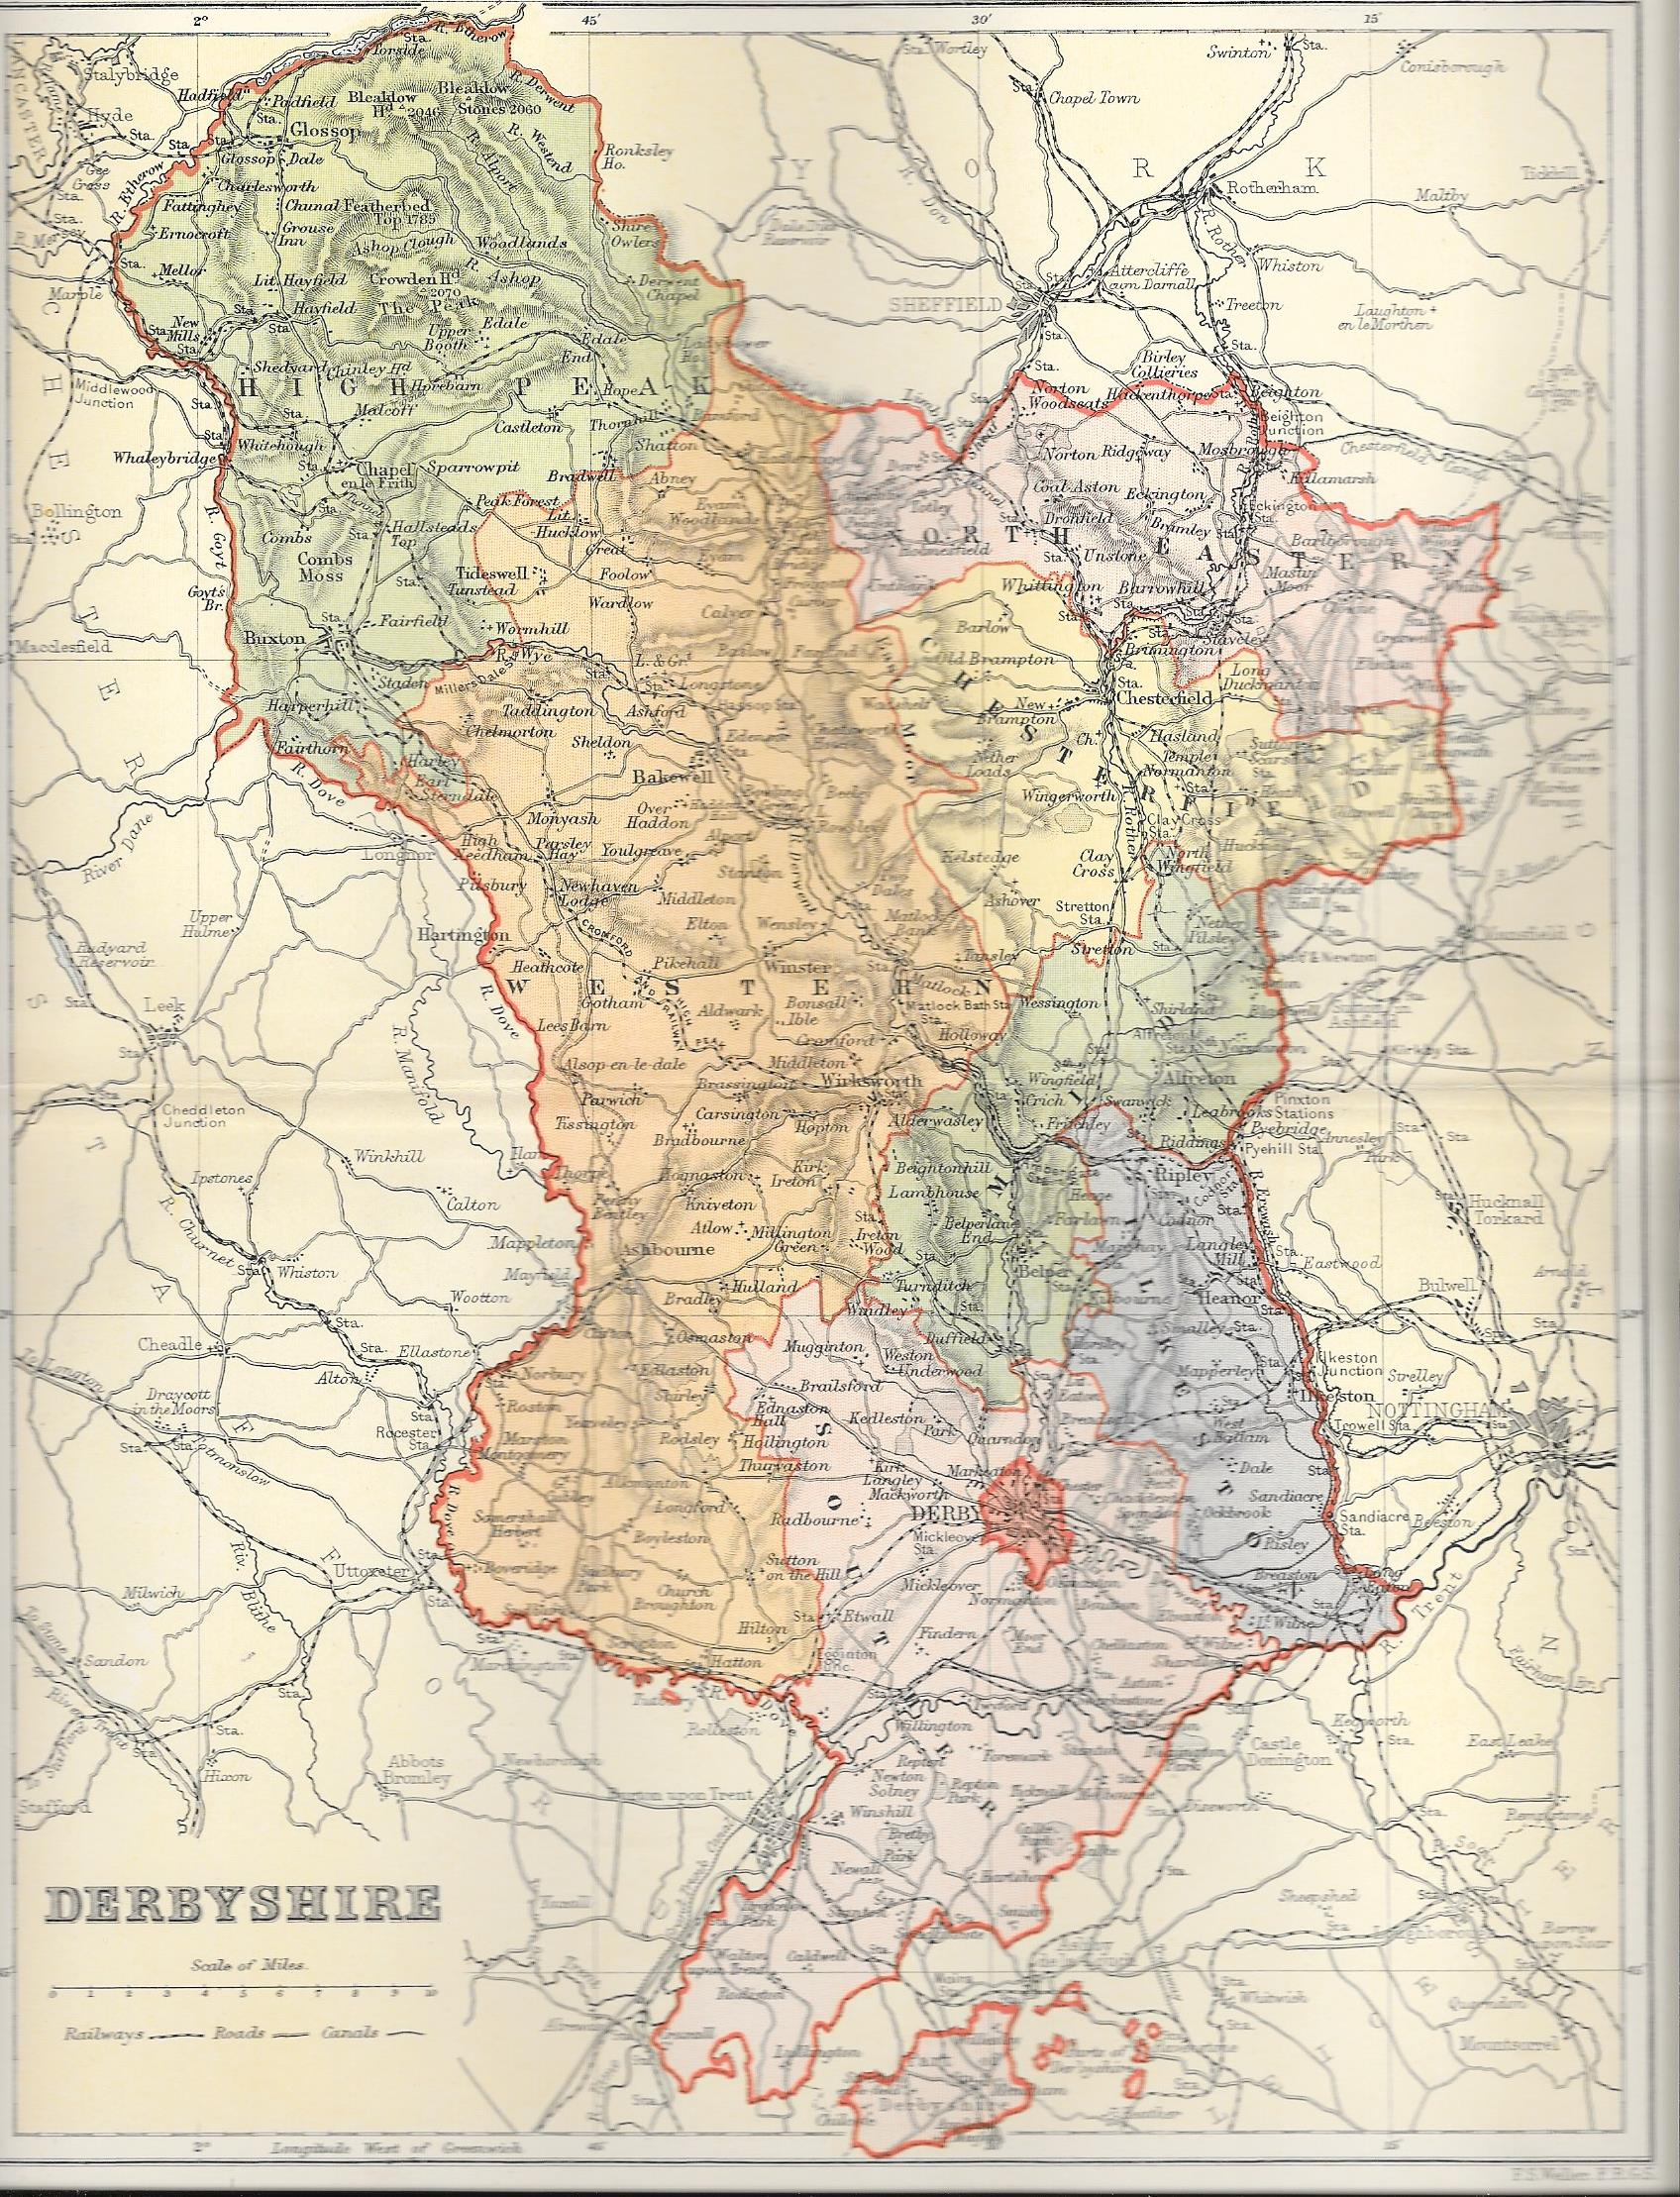 Map Of England Derbyshire.Derbyshire Antique Map Frontispiece